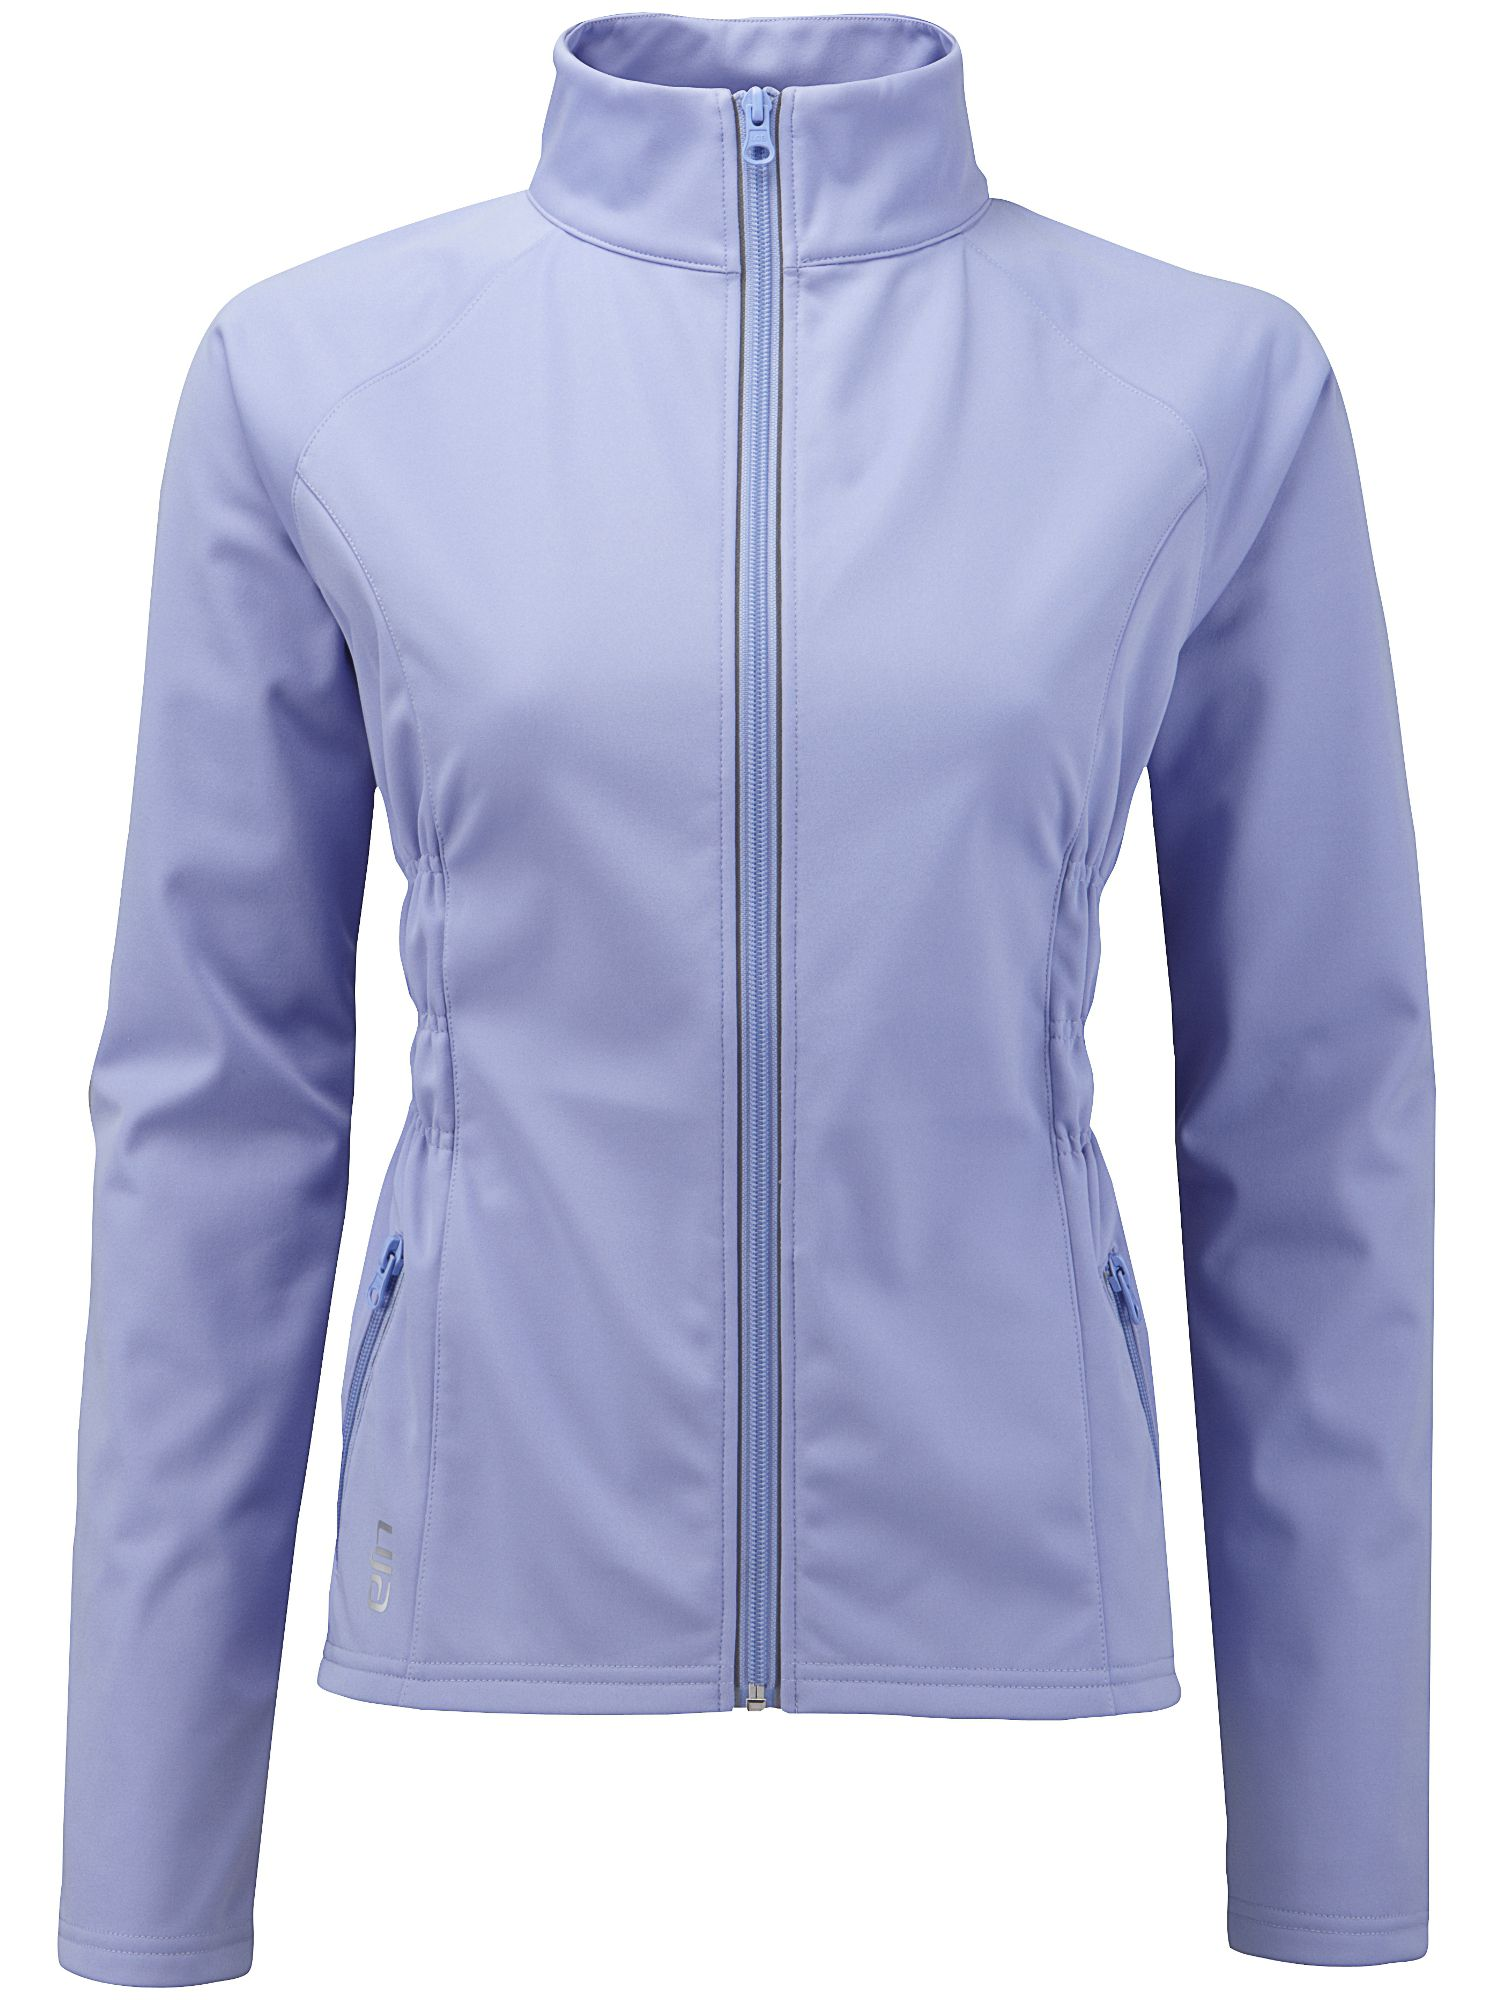 Sphere zip front jacket